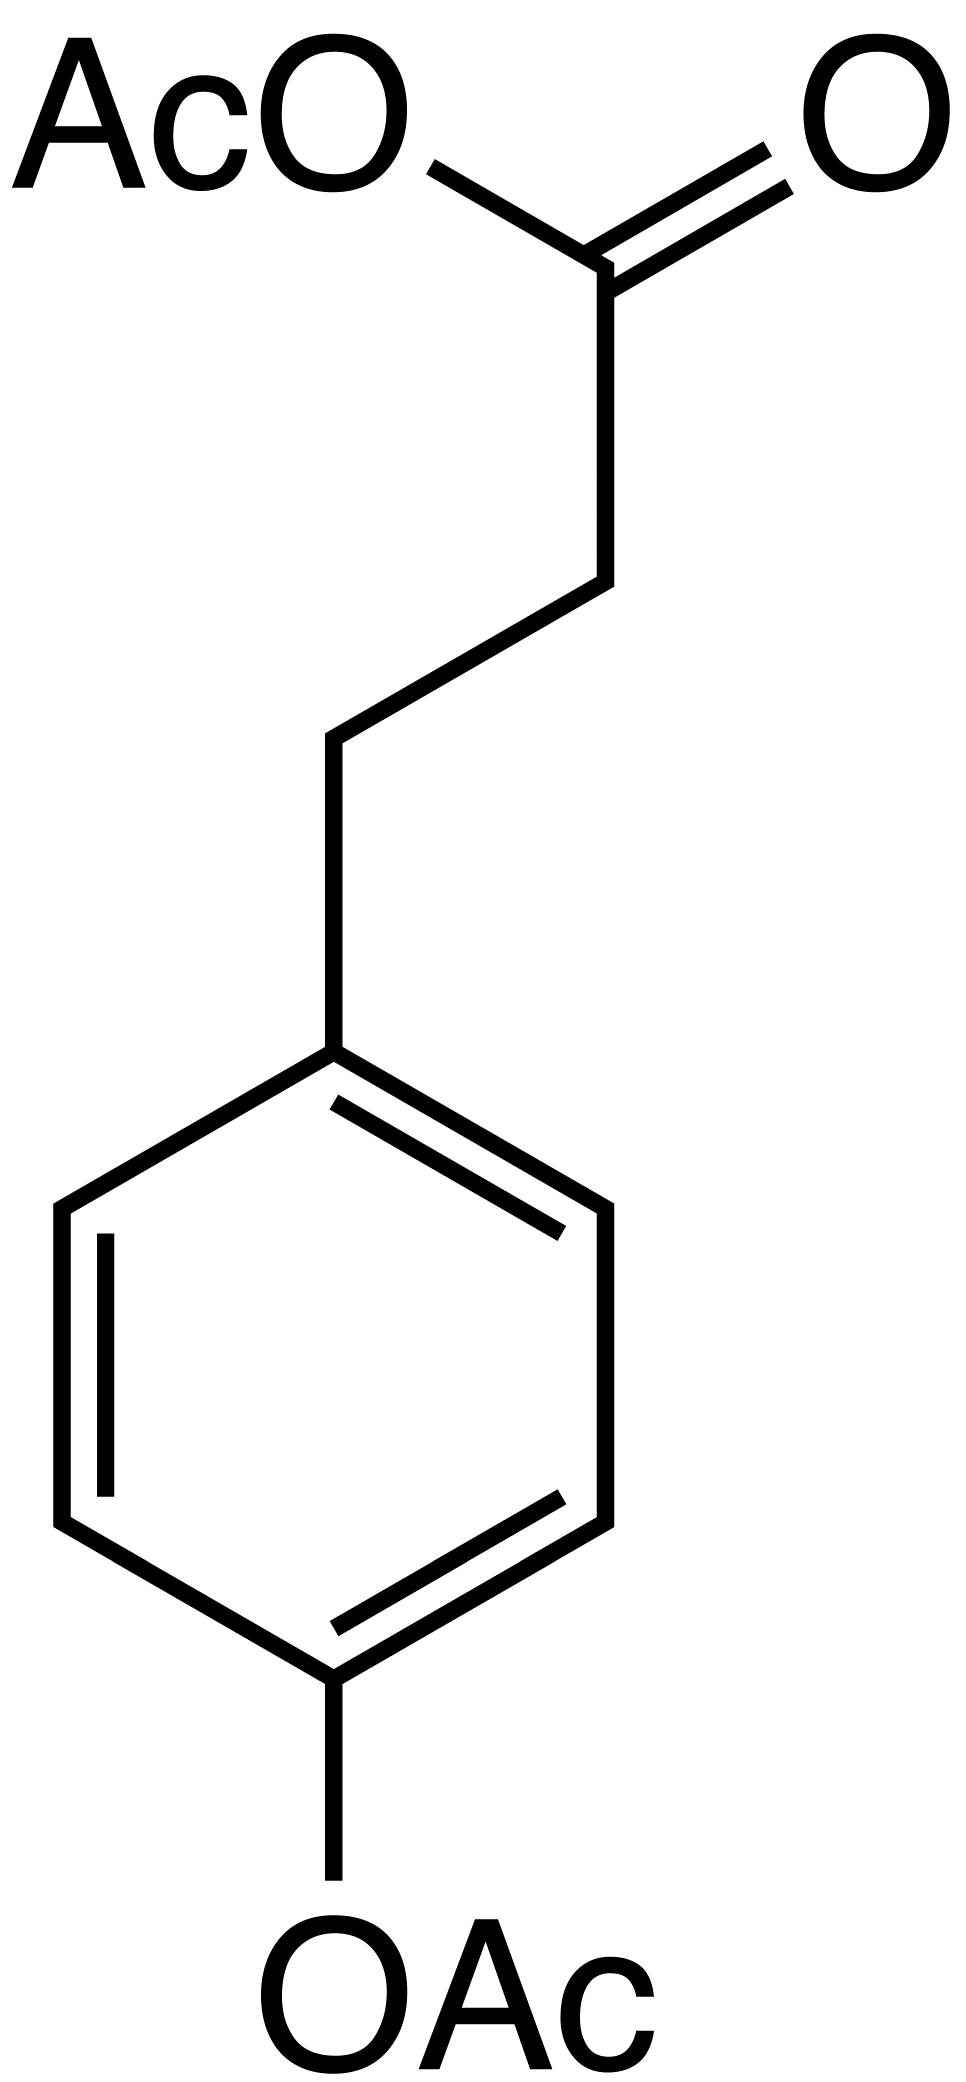 acetylated dihydrocoumaric acid image